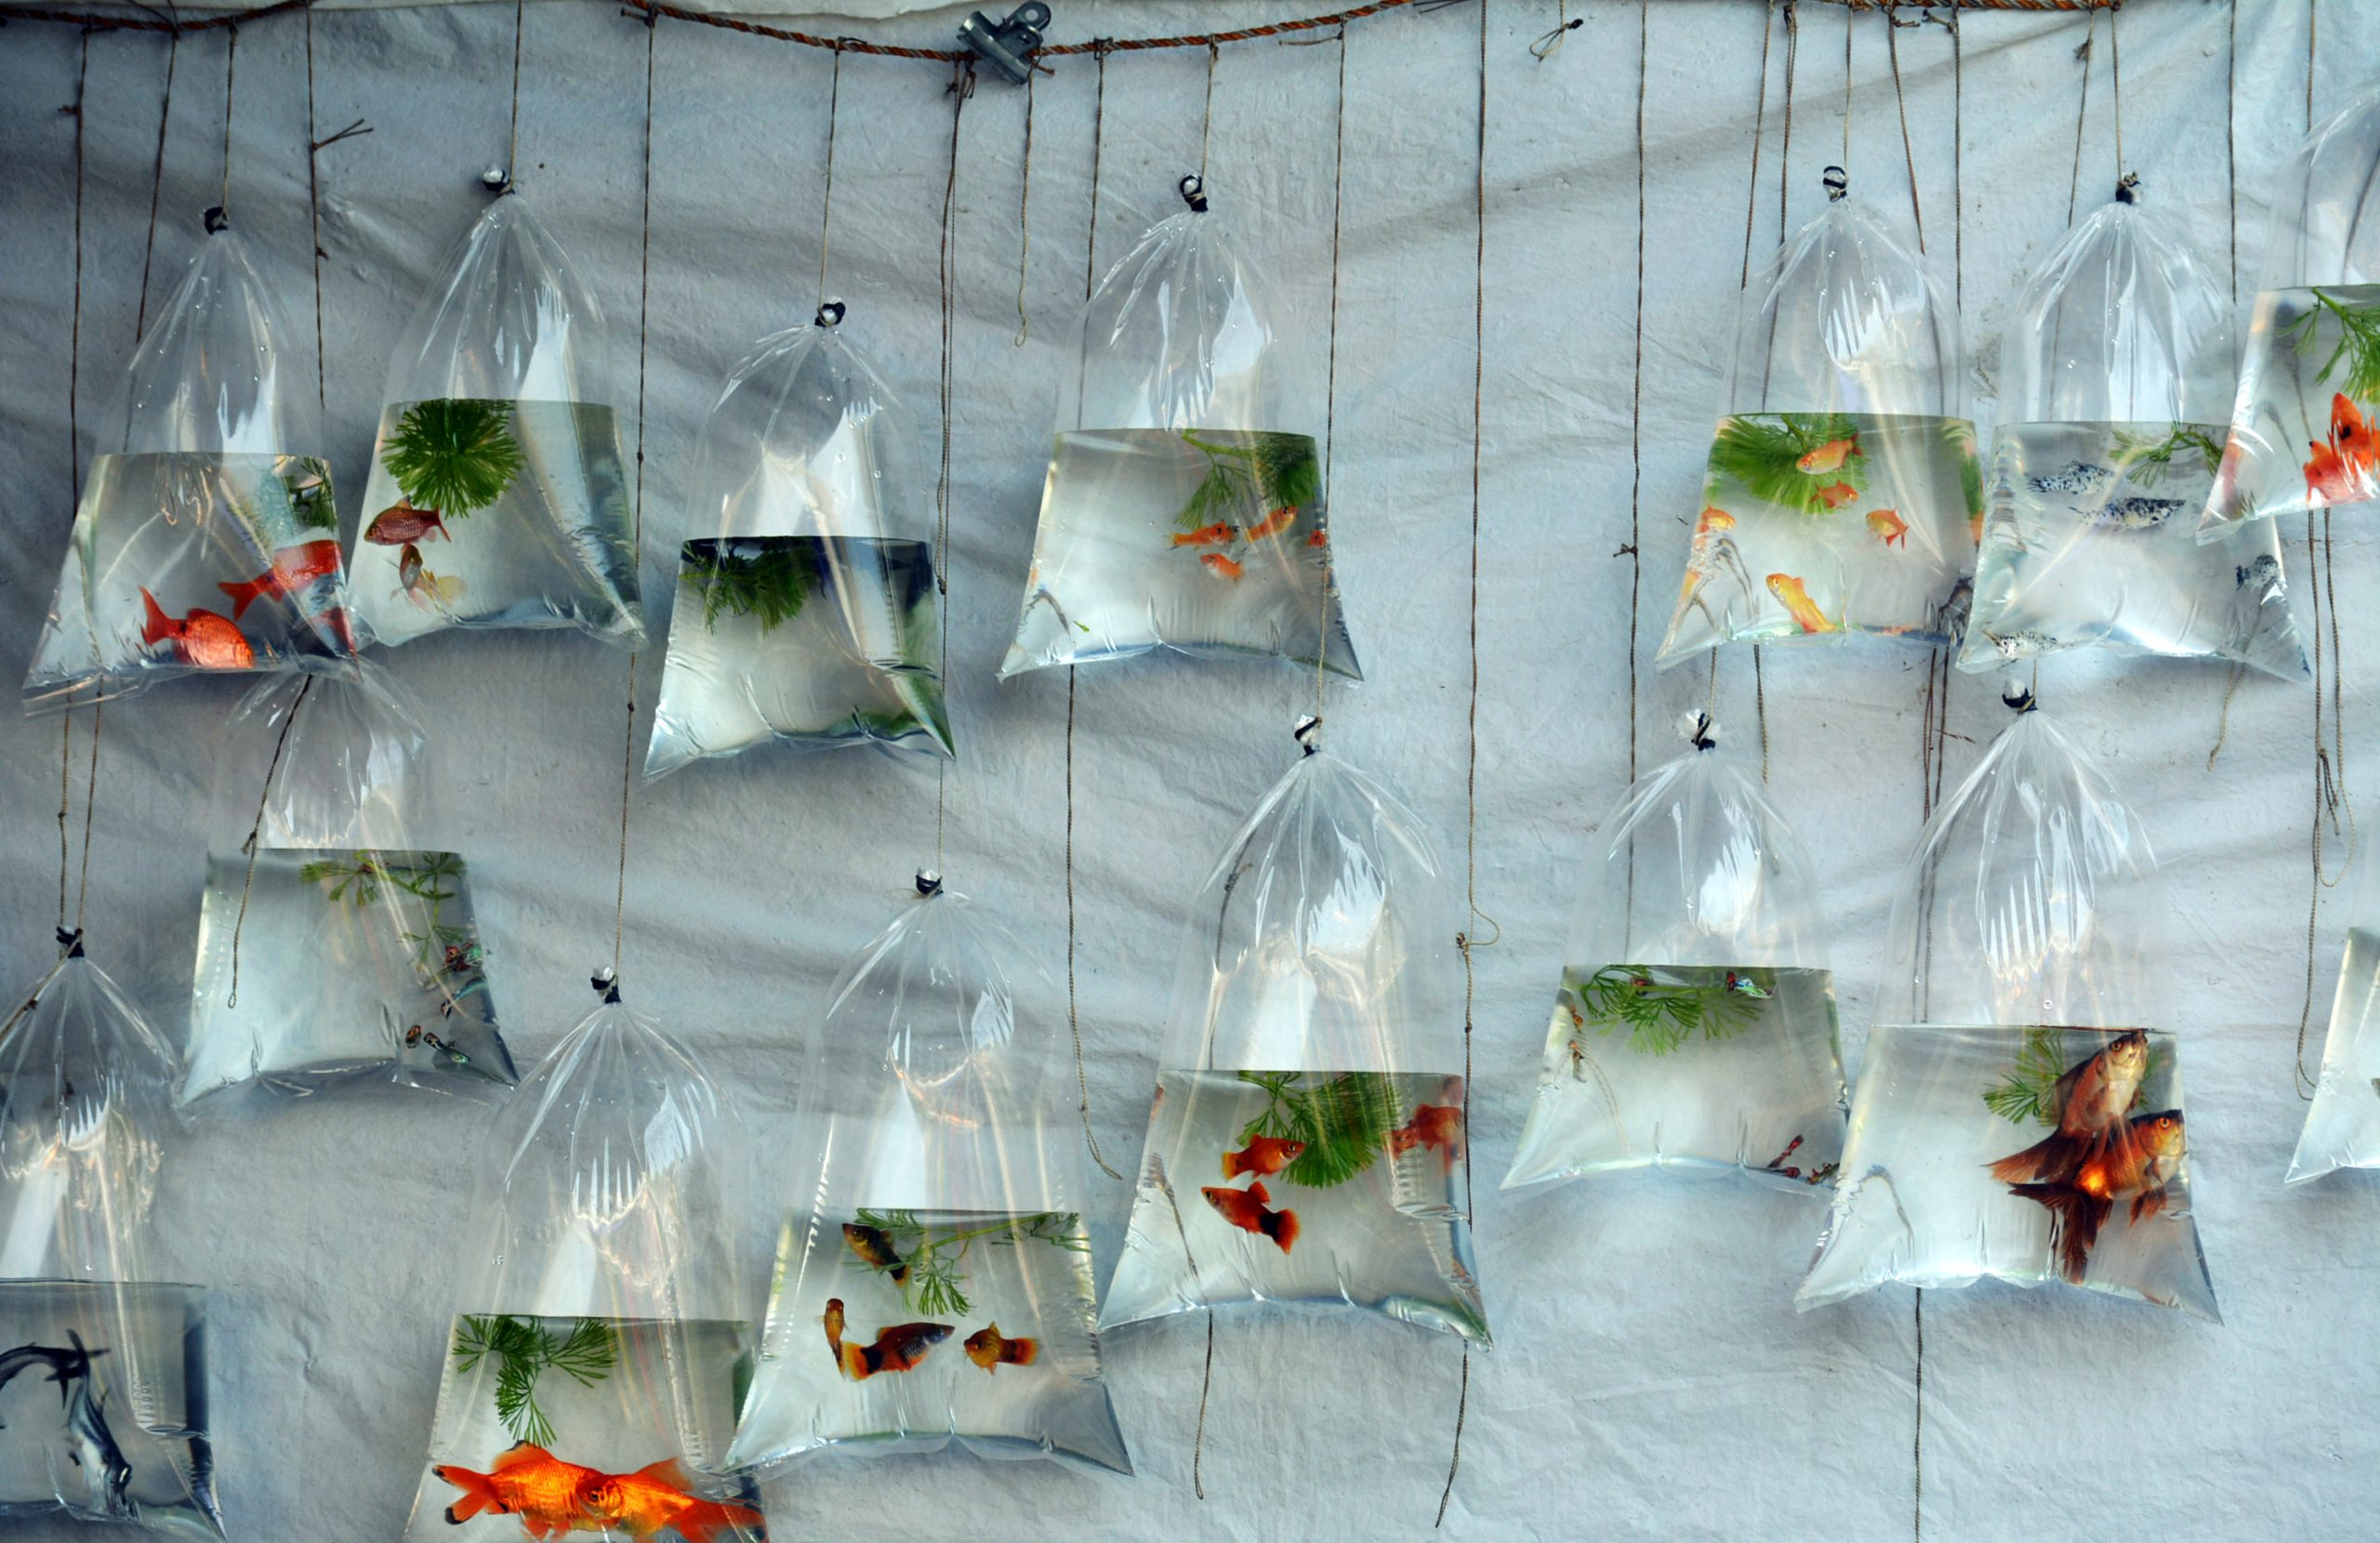 Fishes inside a plastic bag